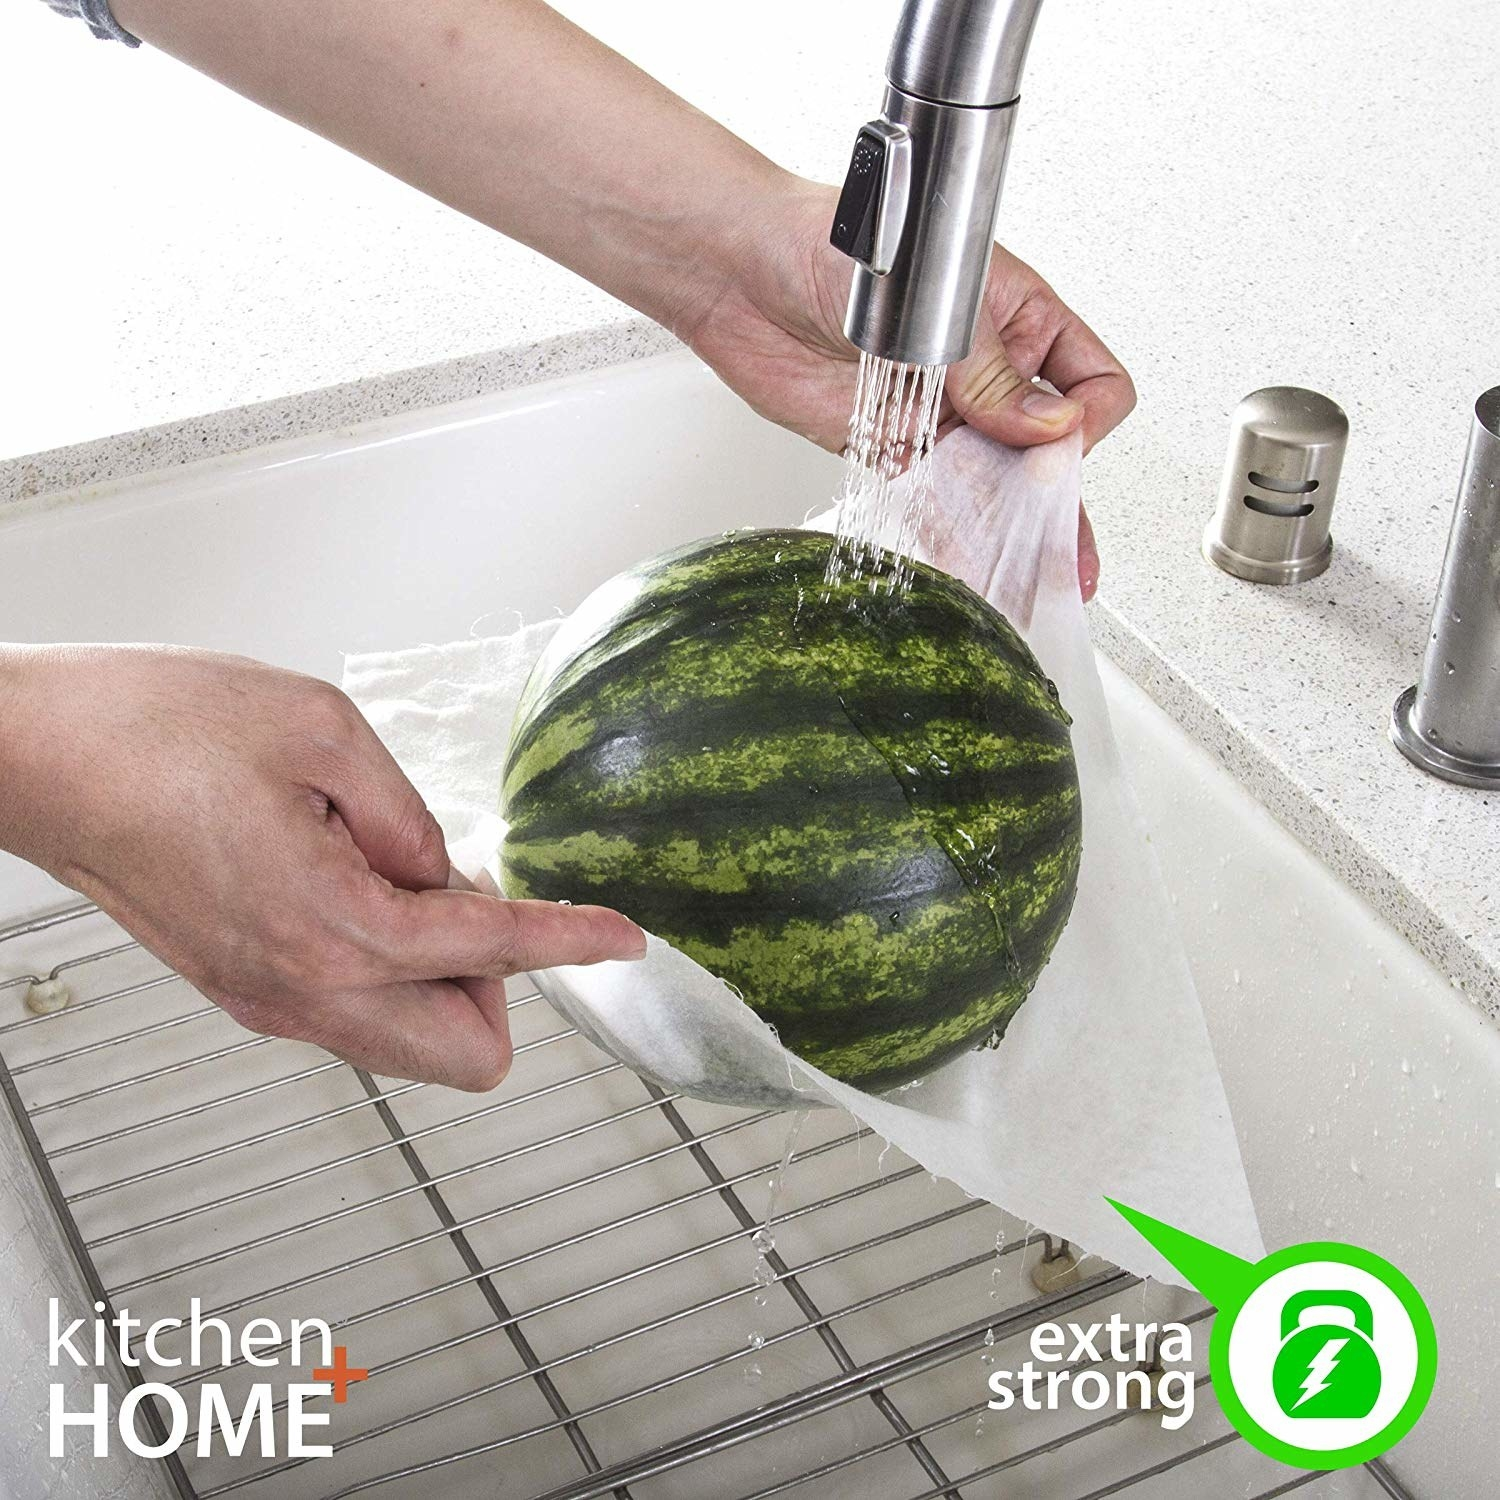 watermelon held in a paper towel under faucet